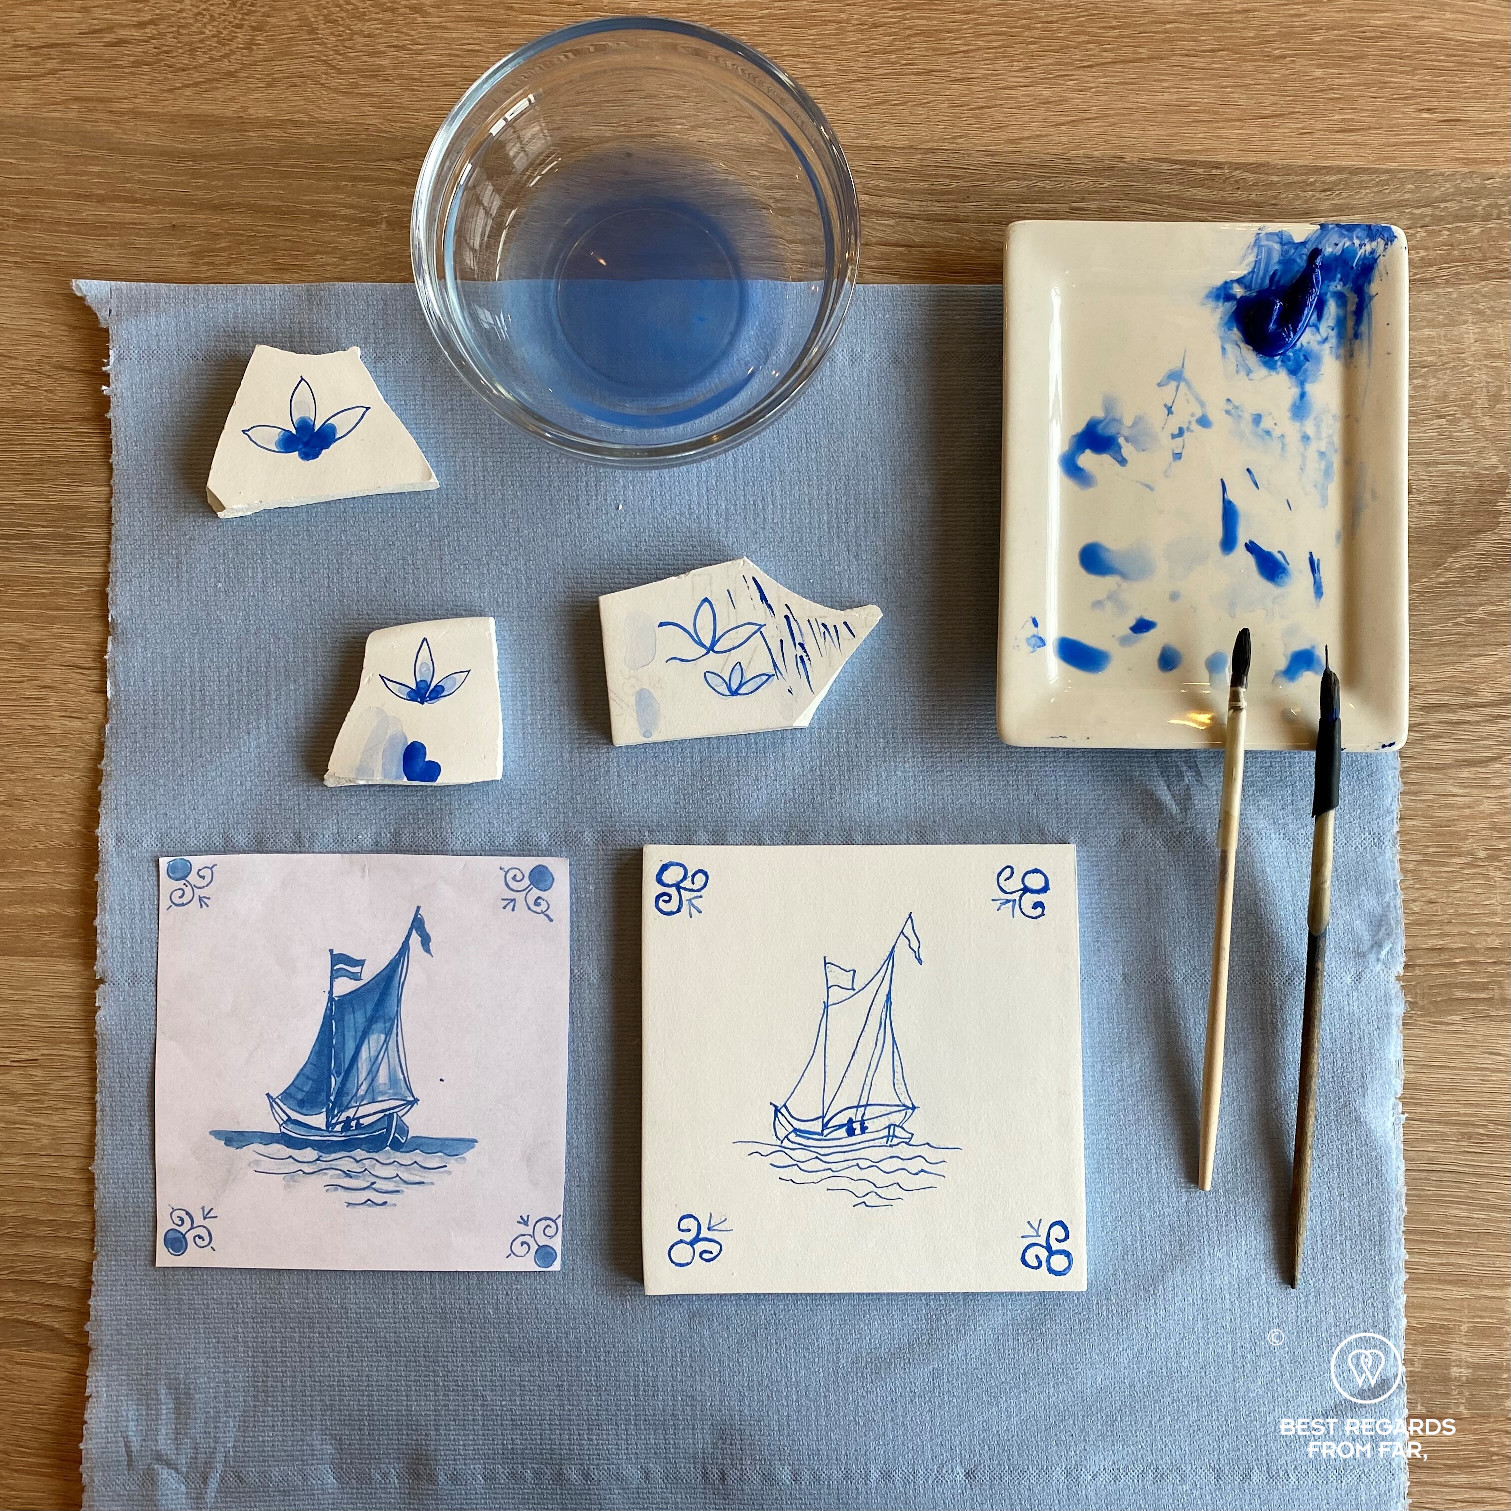 Sailboat painted on a tile during a tile painting workshop at Royal Delft, the Netherlands